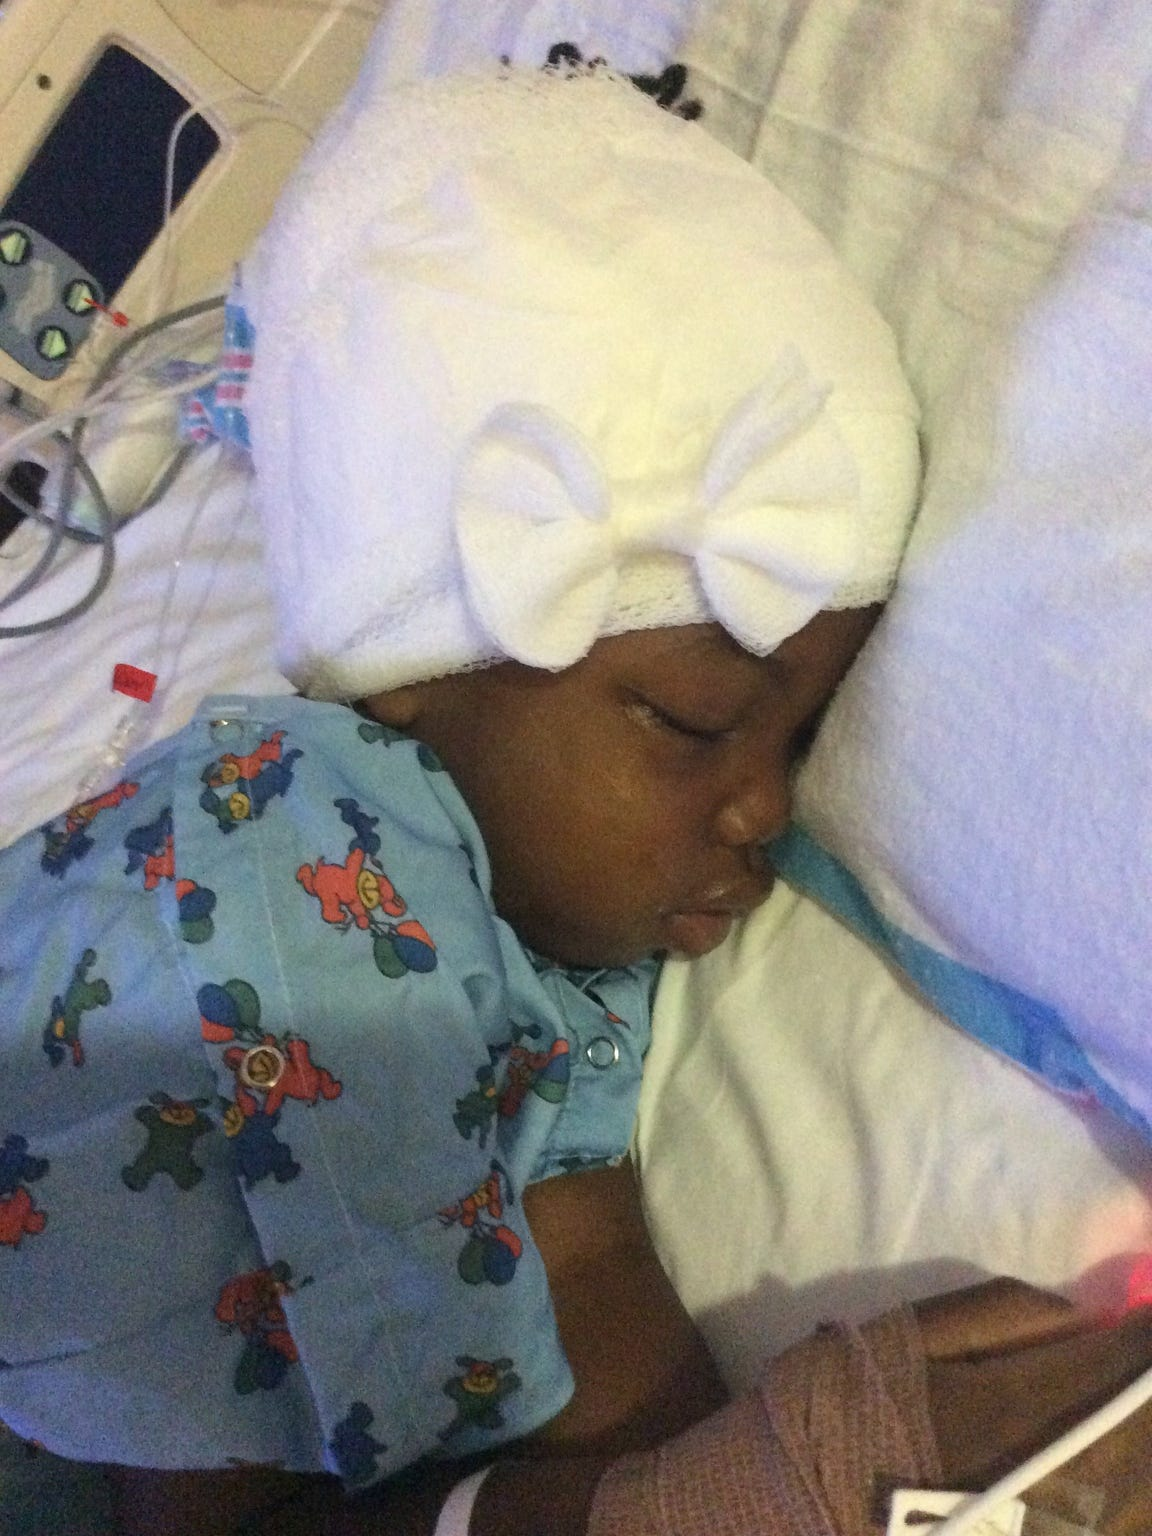 Chika, 5, after surgery at Mott Children's Hospital in June 2015. Dr. Hugh Garton found malignant tissue wrapped throughout healthy tissue.